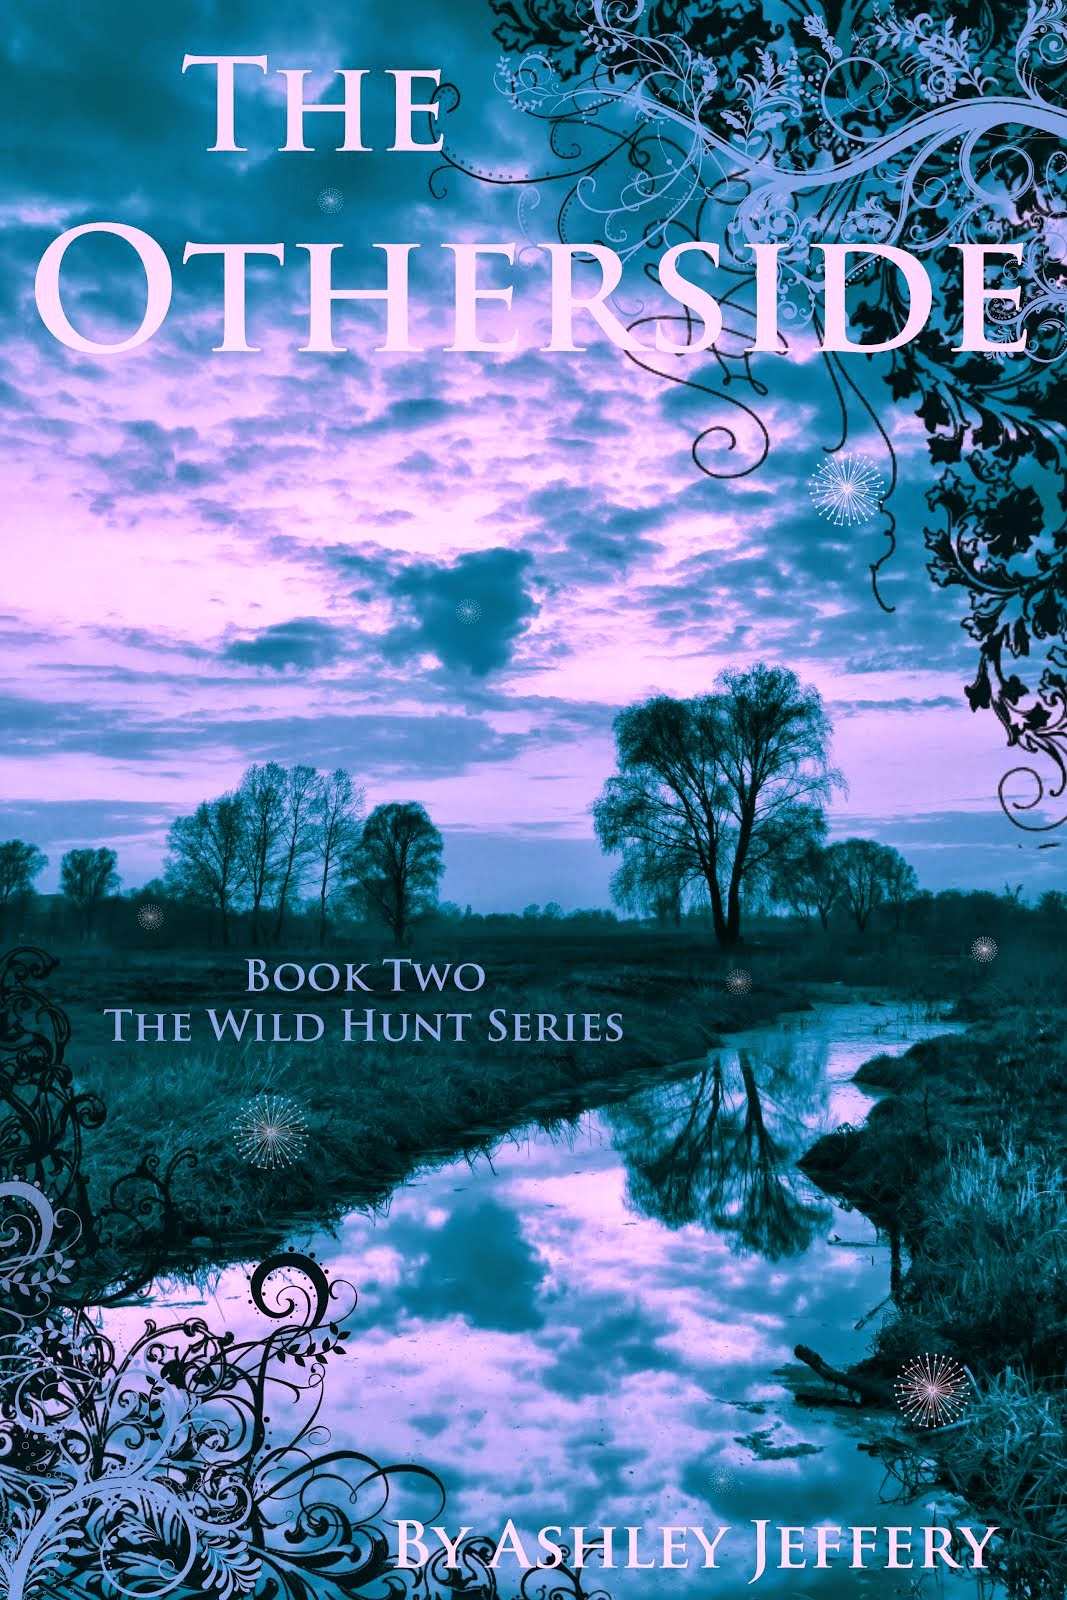 Buy The Otherside on Amazon!!!